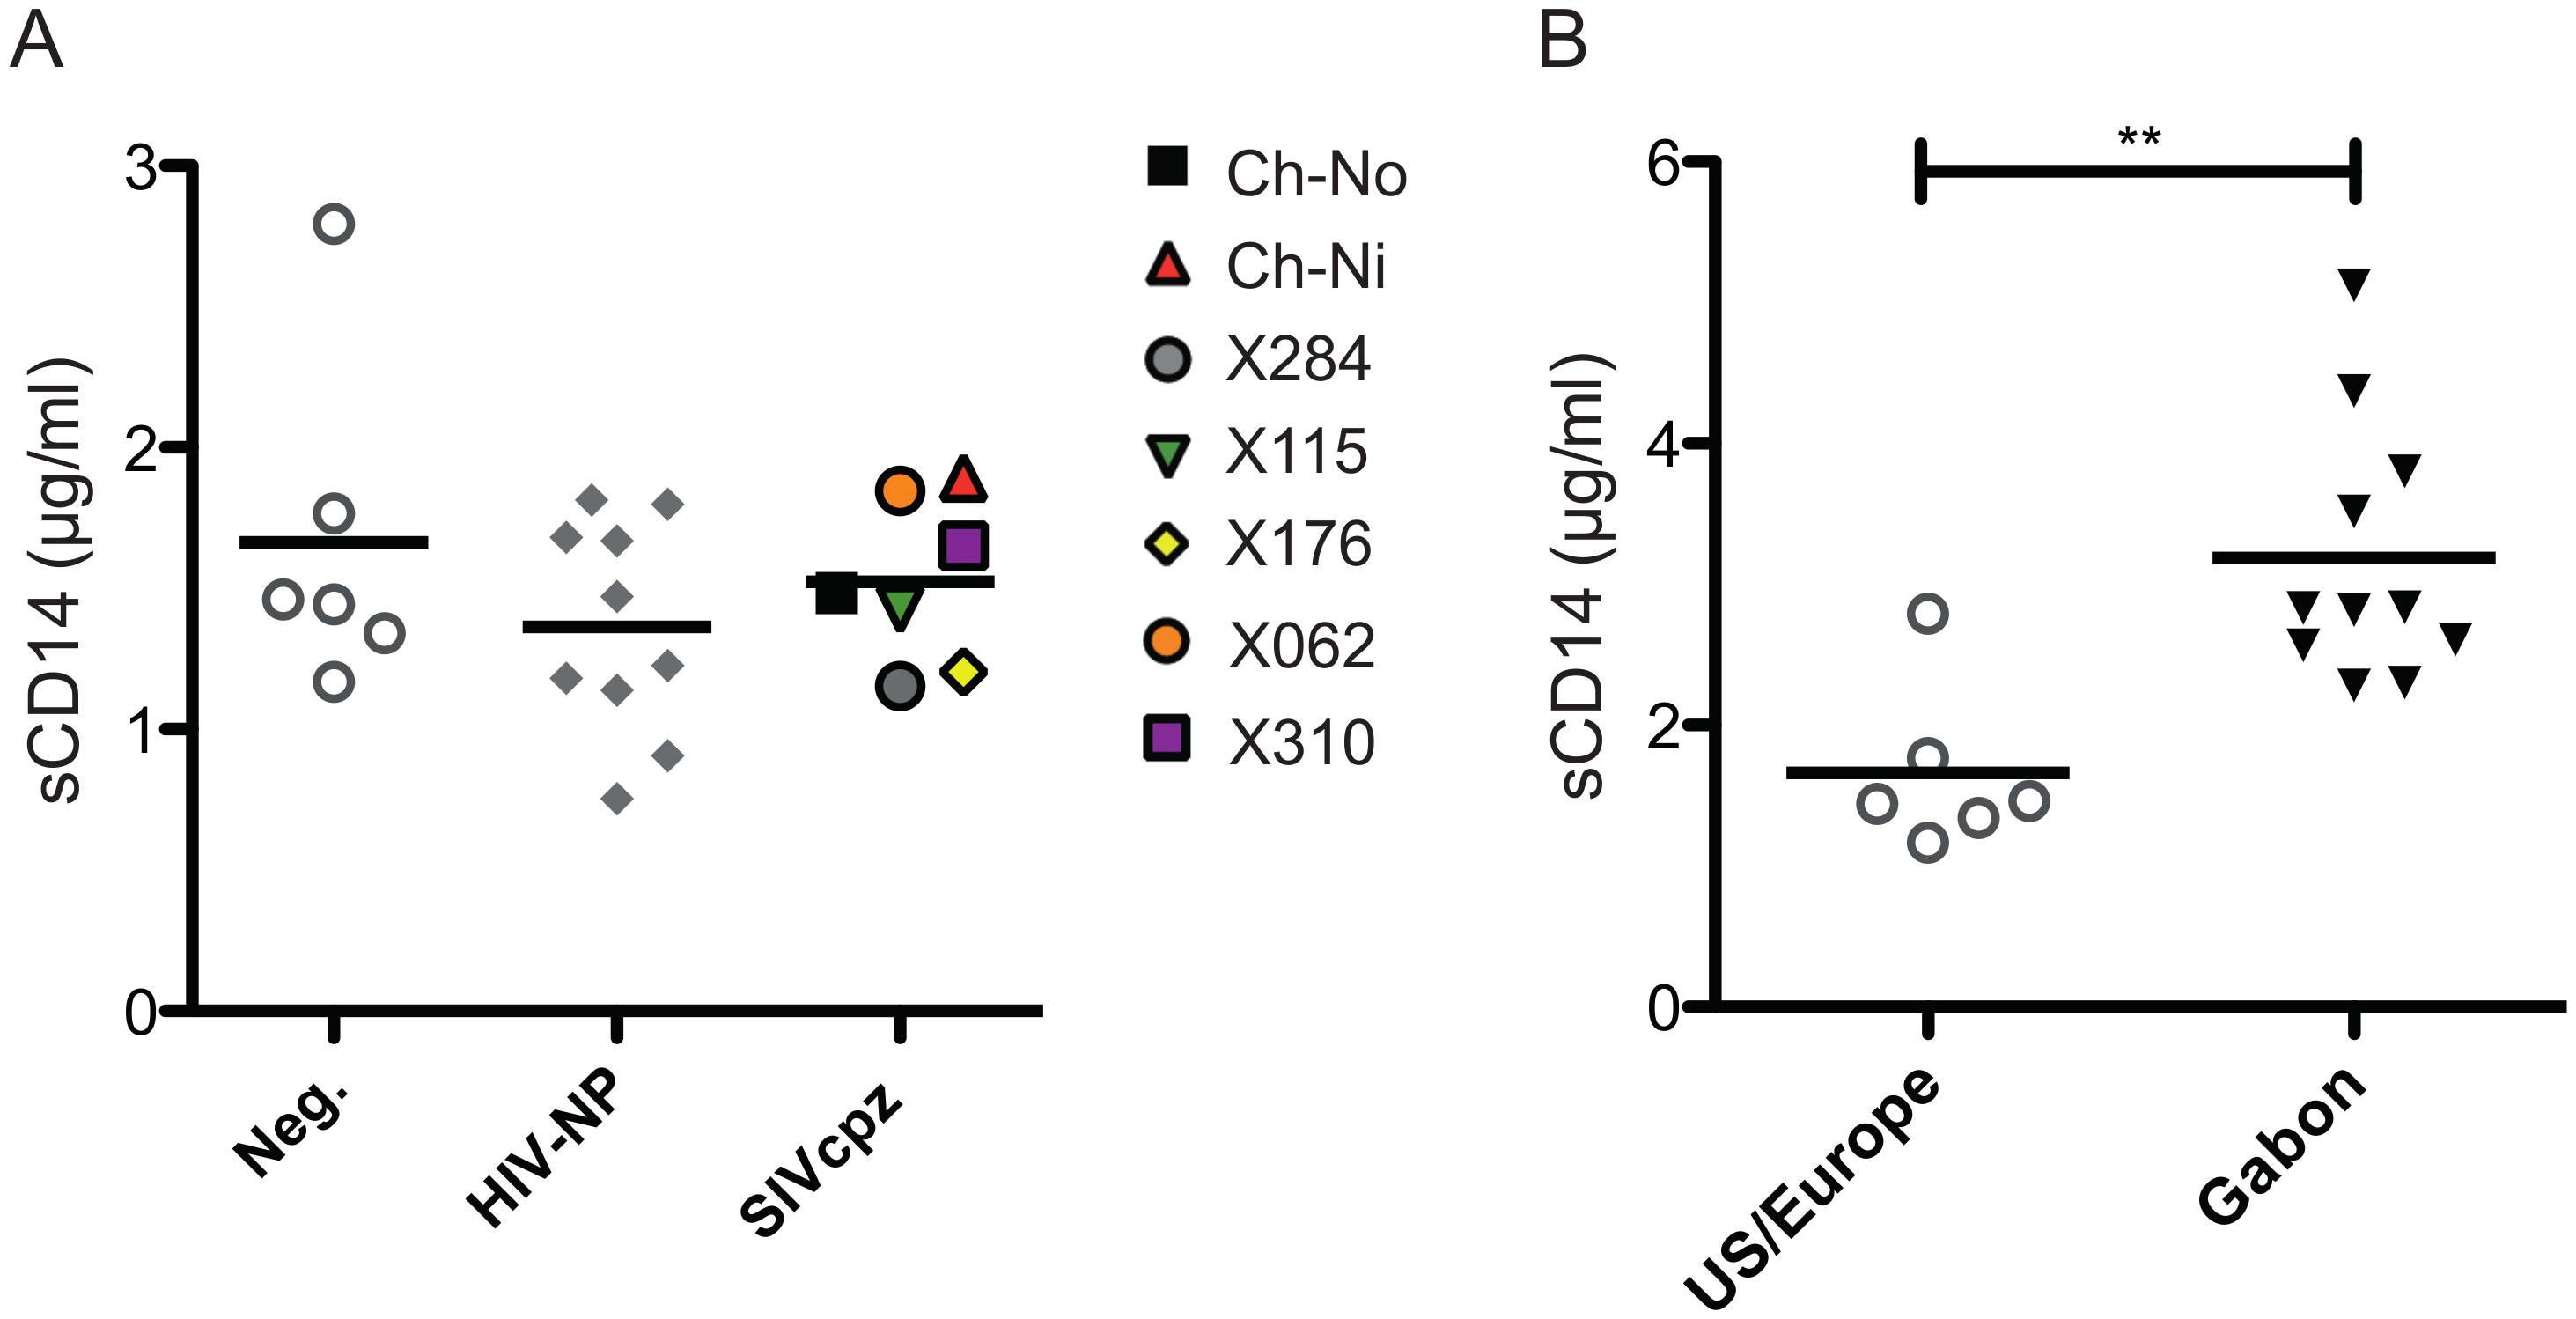 Levels of plasma soluble CD14 in uninfected and SIVcpz infected chimpanzees.